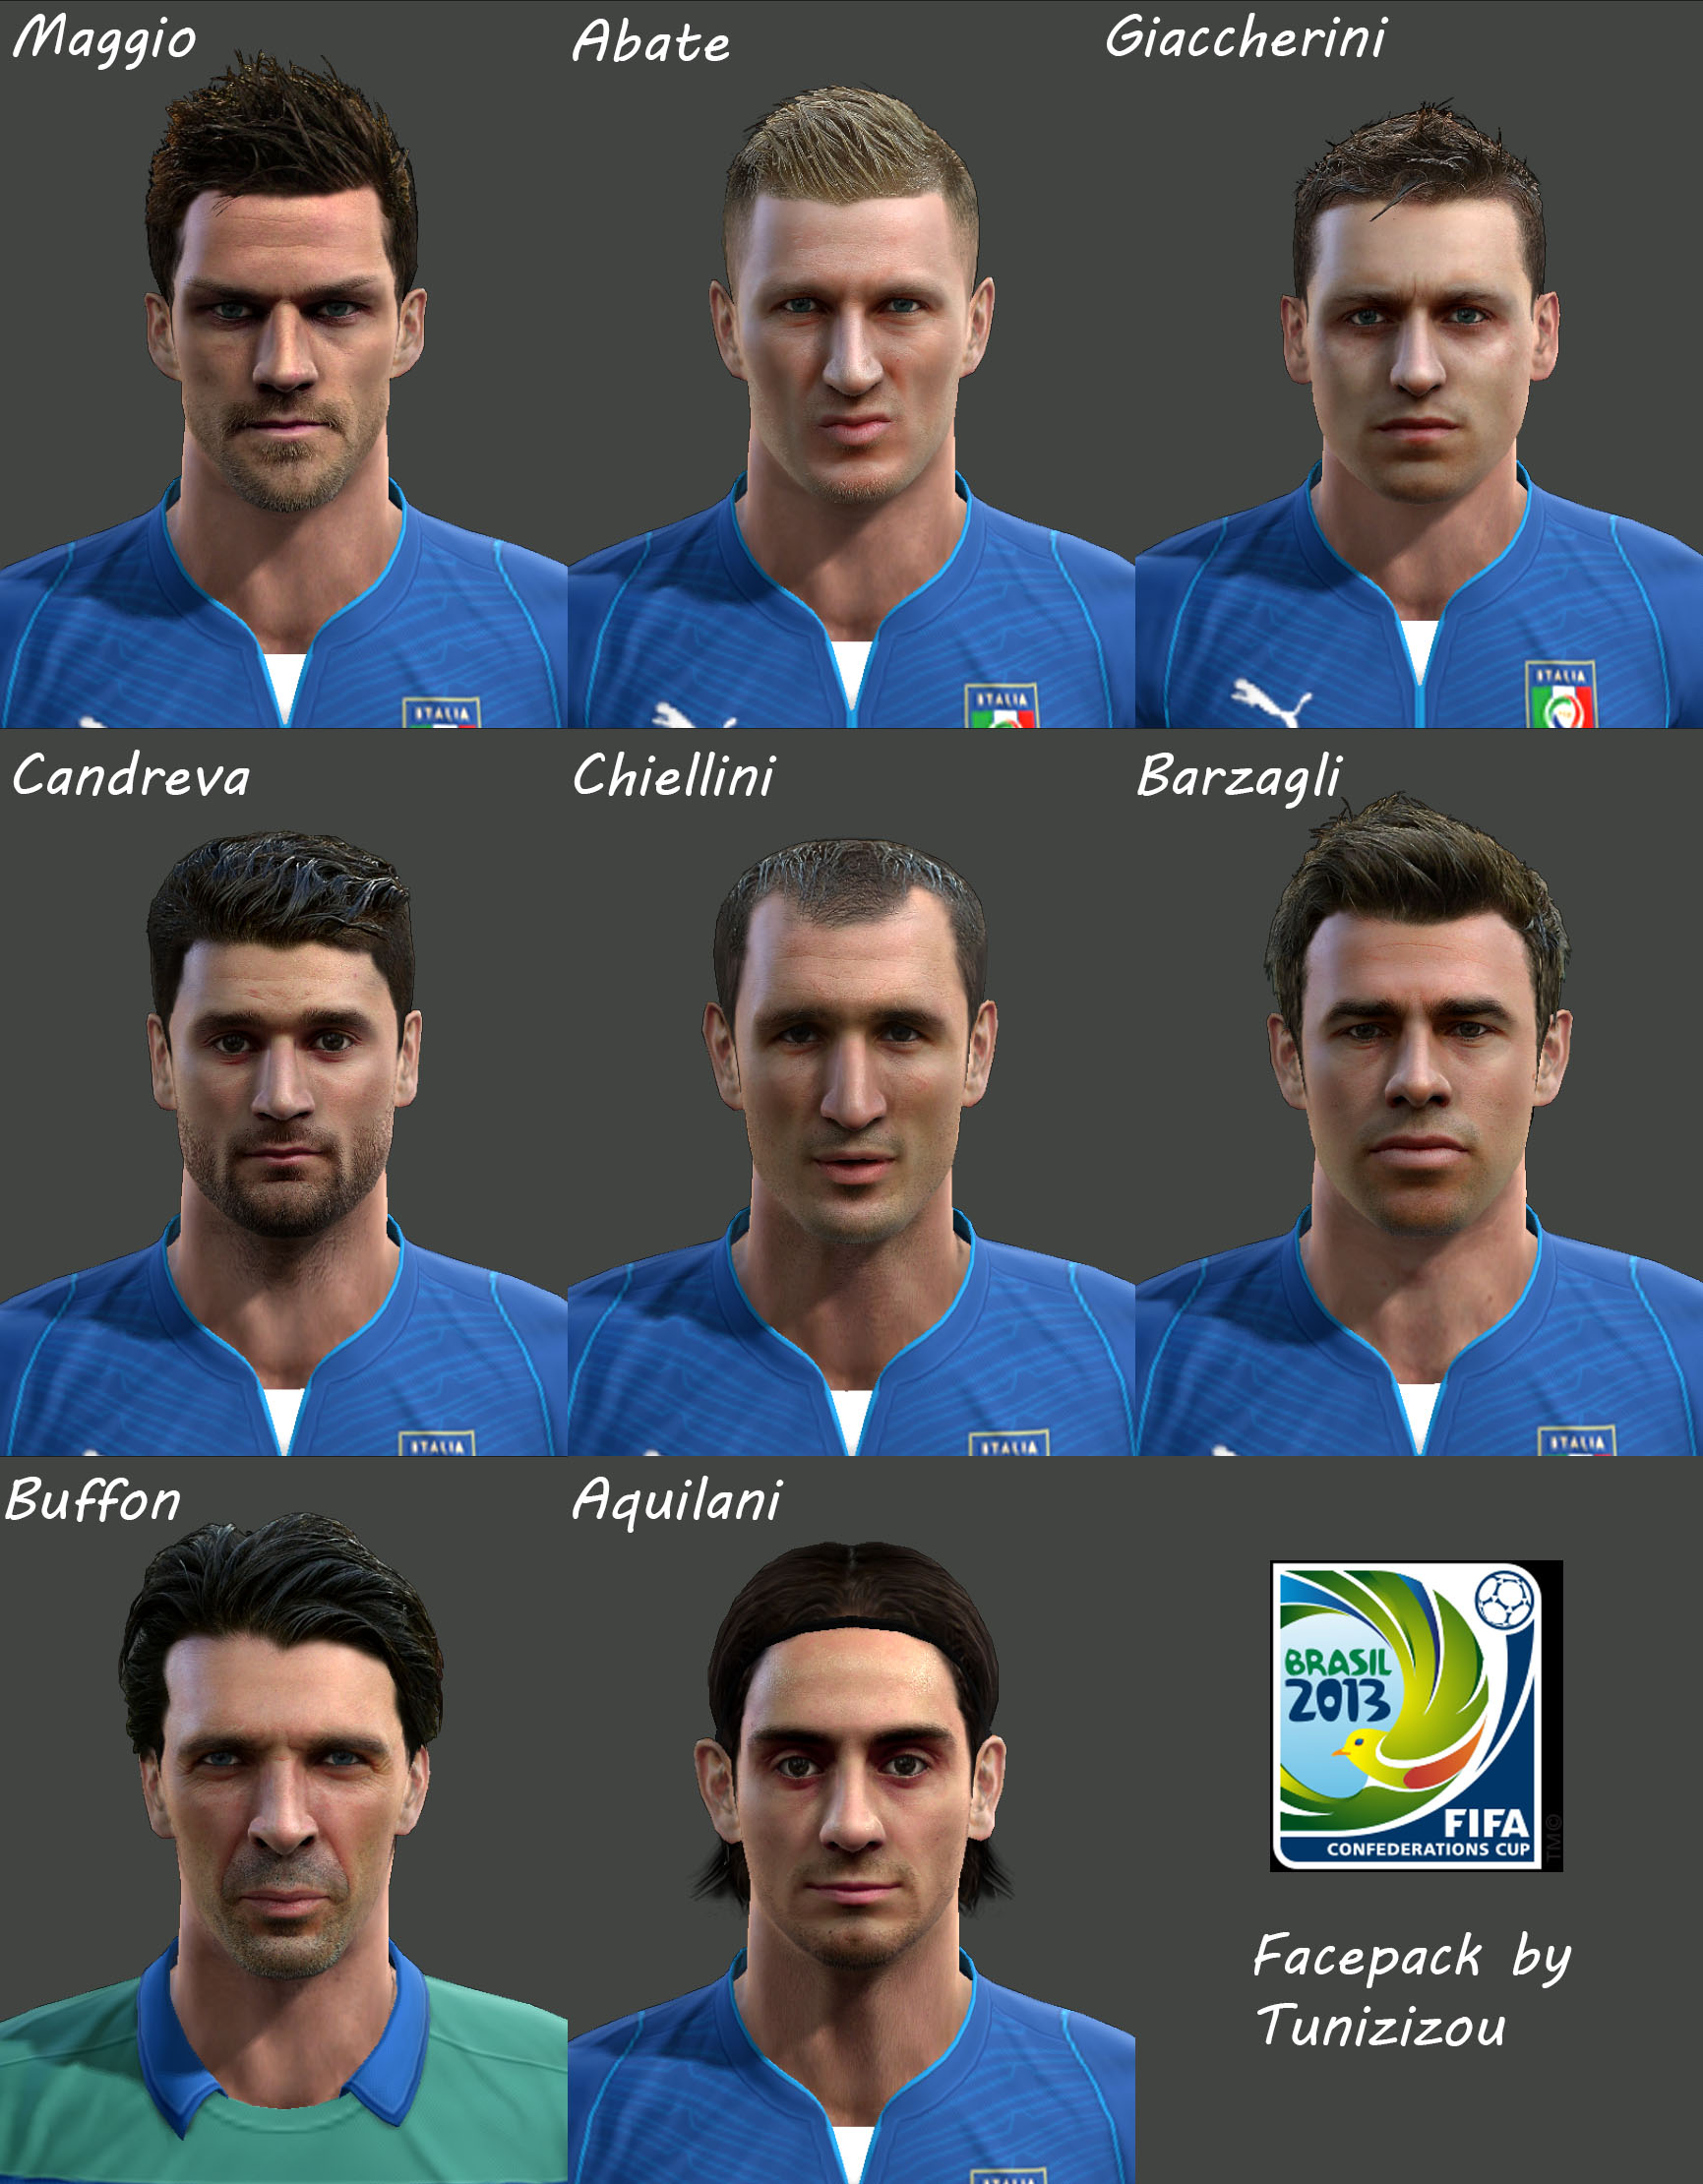 pes 2013 italy confederation cup face pack